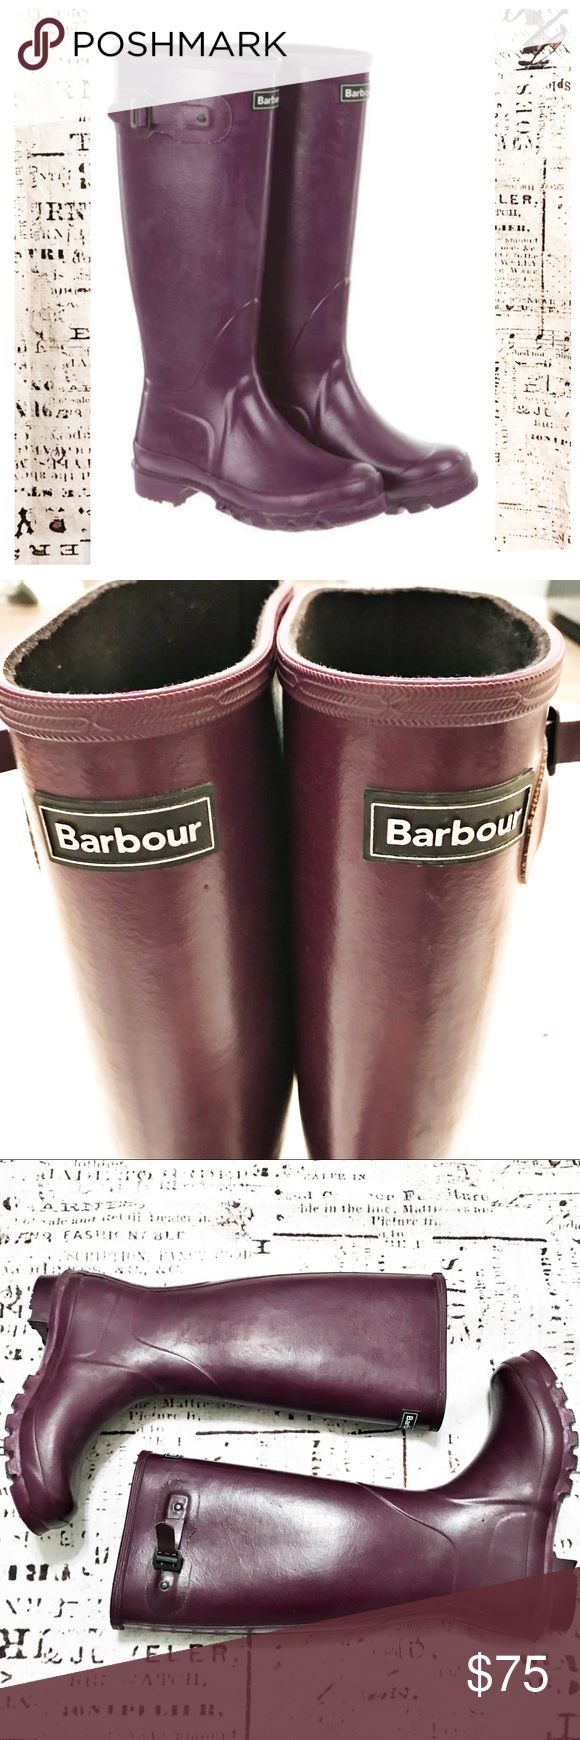 Barbour Town and Country Wellington Boots Purple Beautiful rain boots by Barbour. Style is Town and Country Wellington. Purple in color with Barbour logo on front shin and adjustable side strap. Slight signs of discoloration due to wear, but in structurally excellent condition. Size 10. Barbour Shoes Winter & Rain Boots